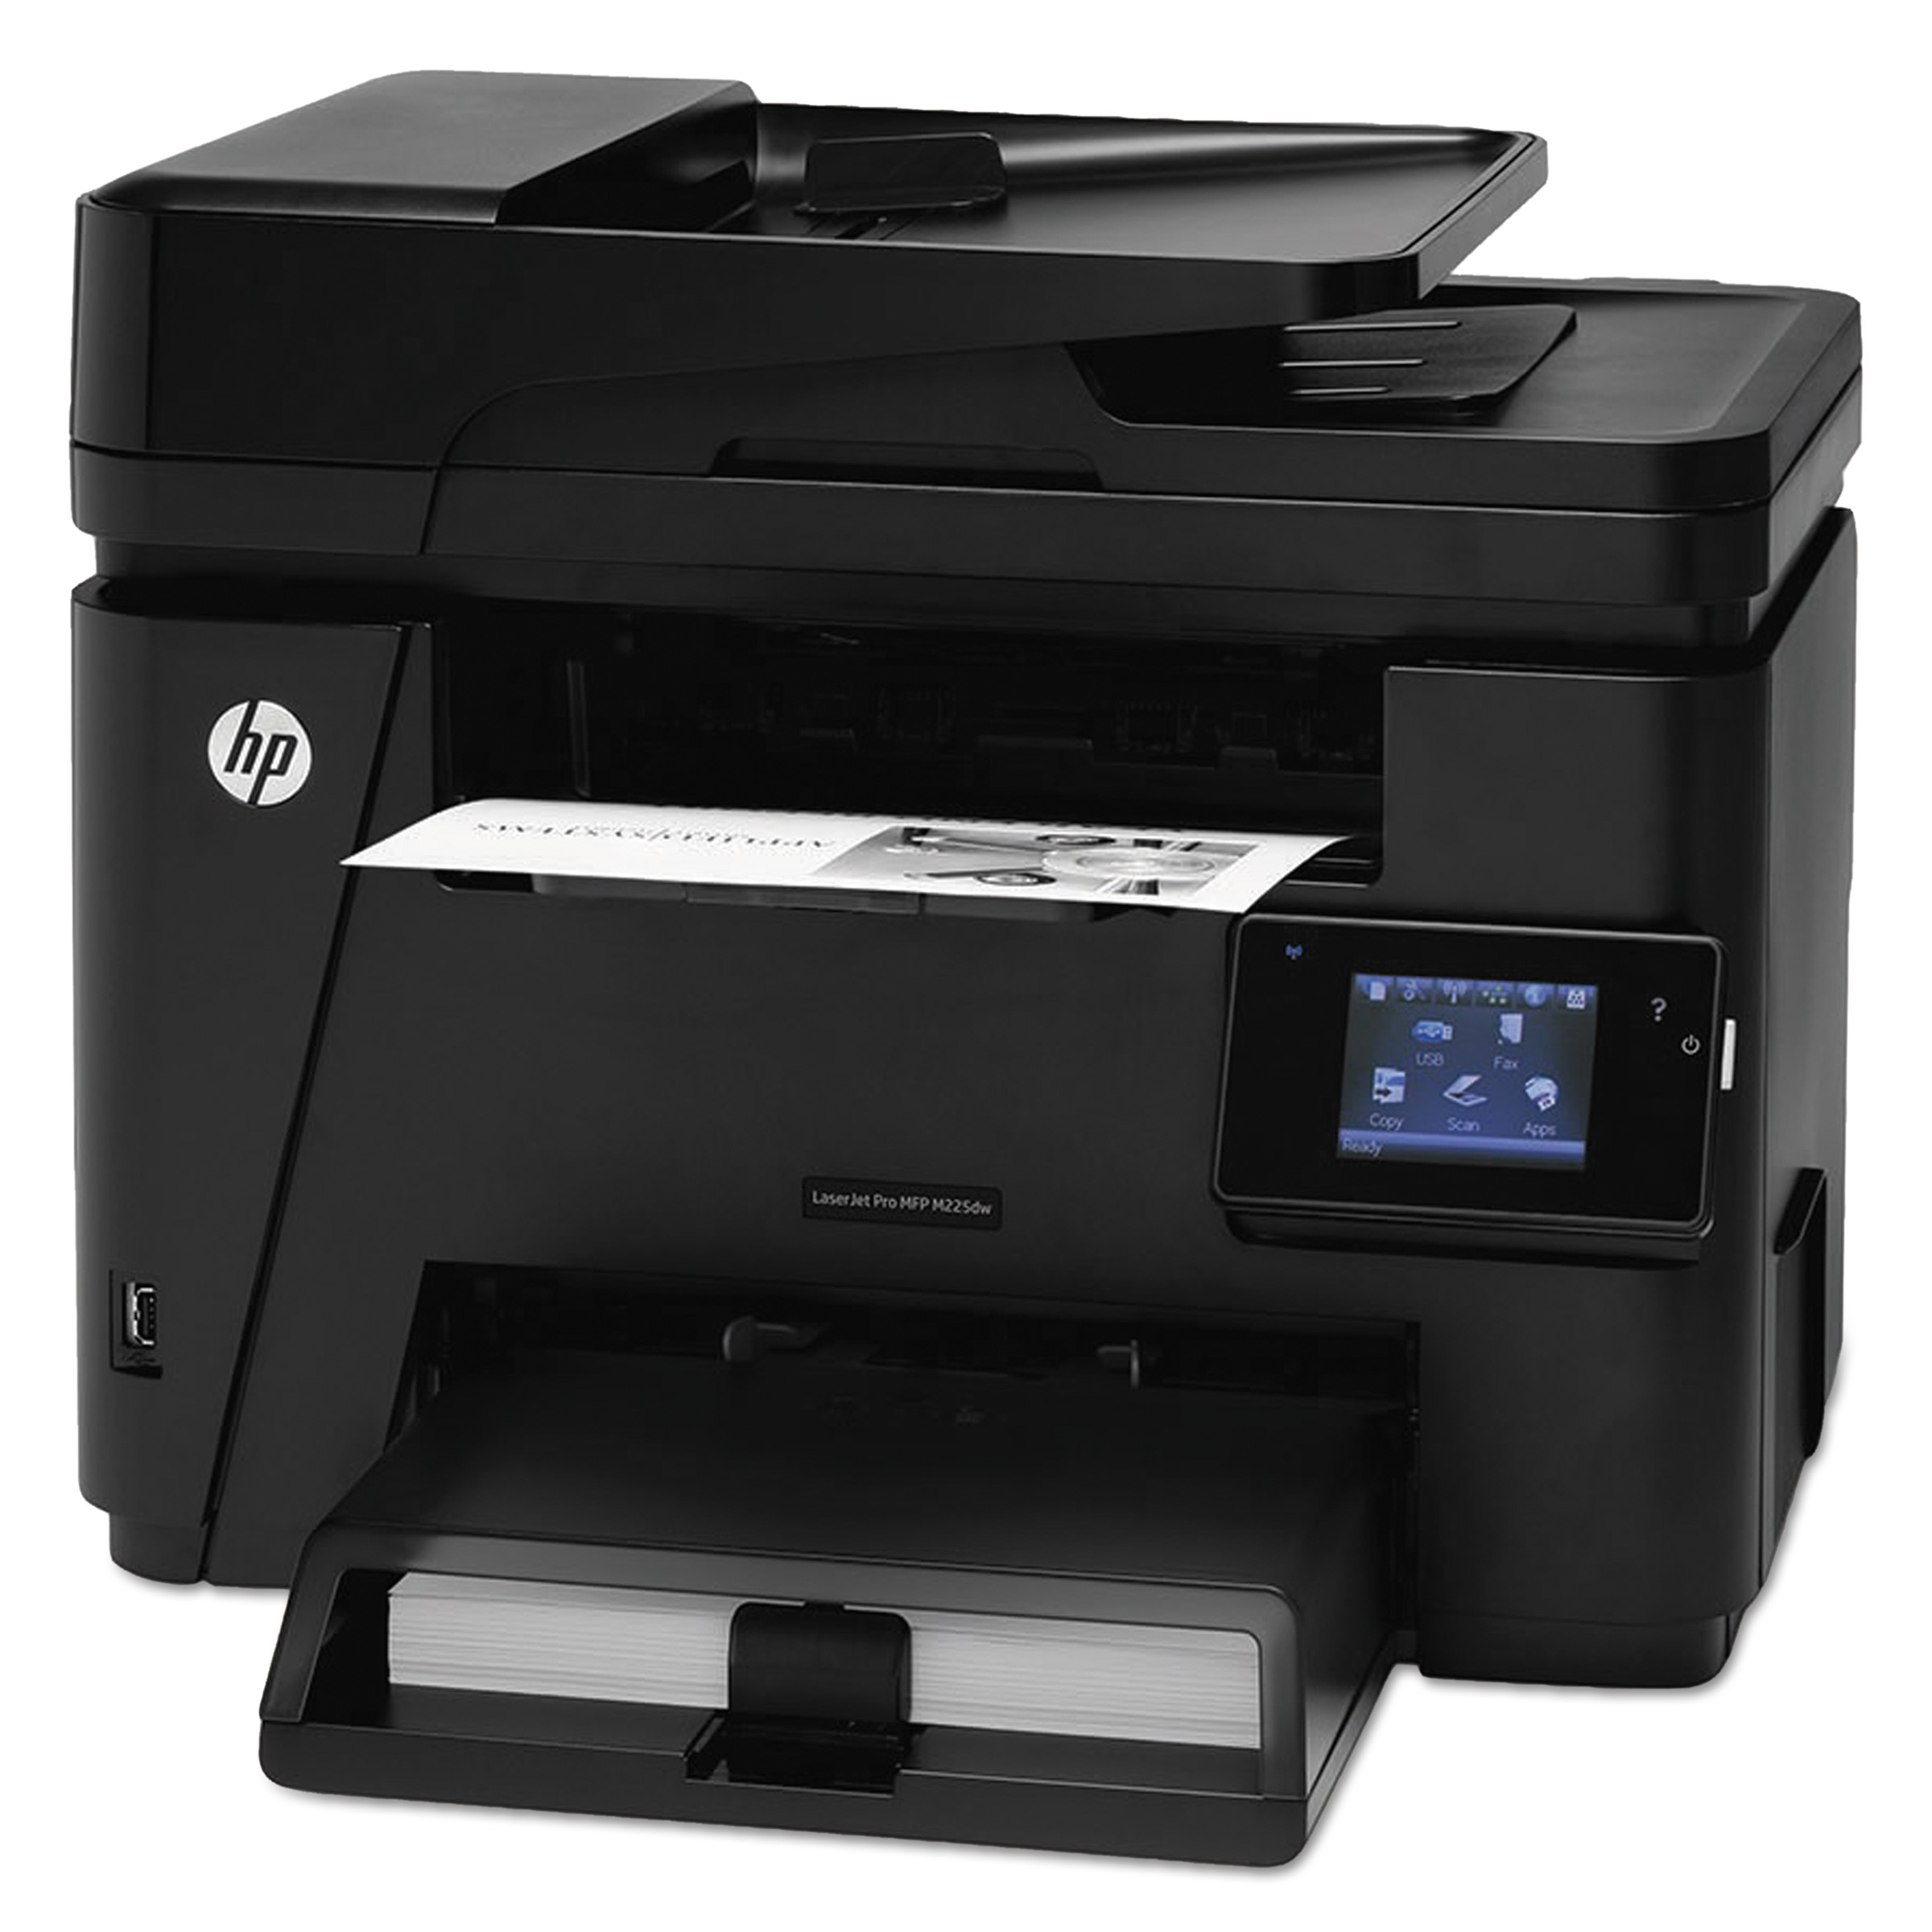 Hewlett Packard LaserJet Pro M225Dw Wireless Monochrome Printer by HP